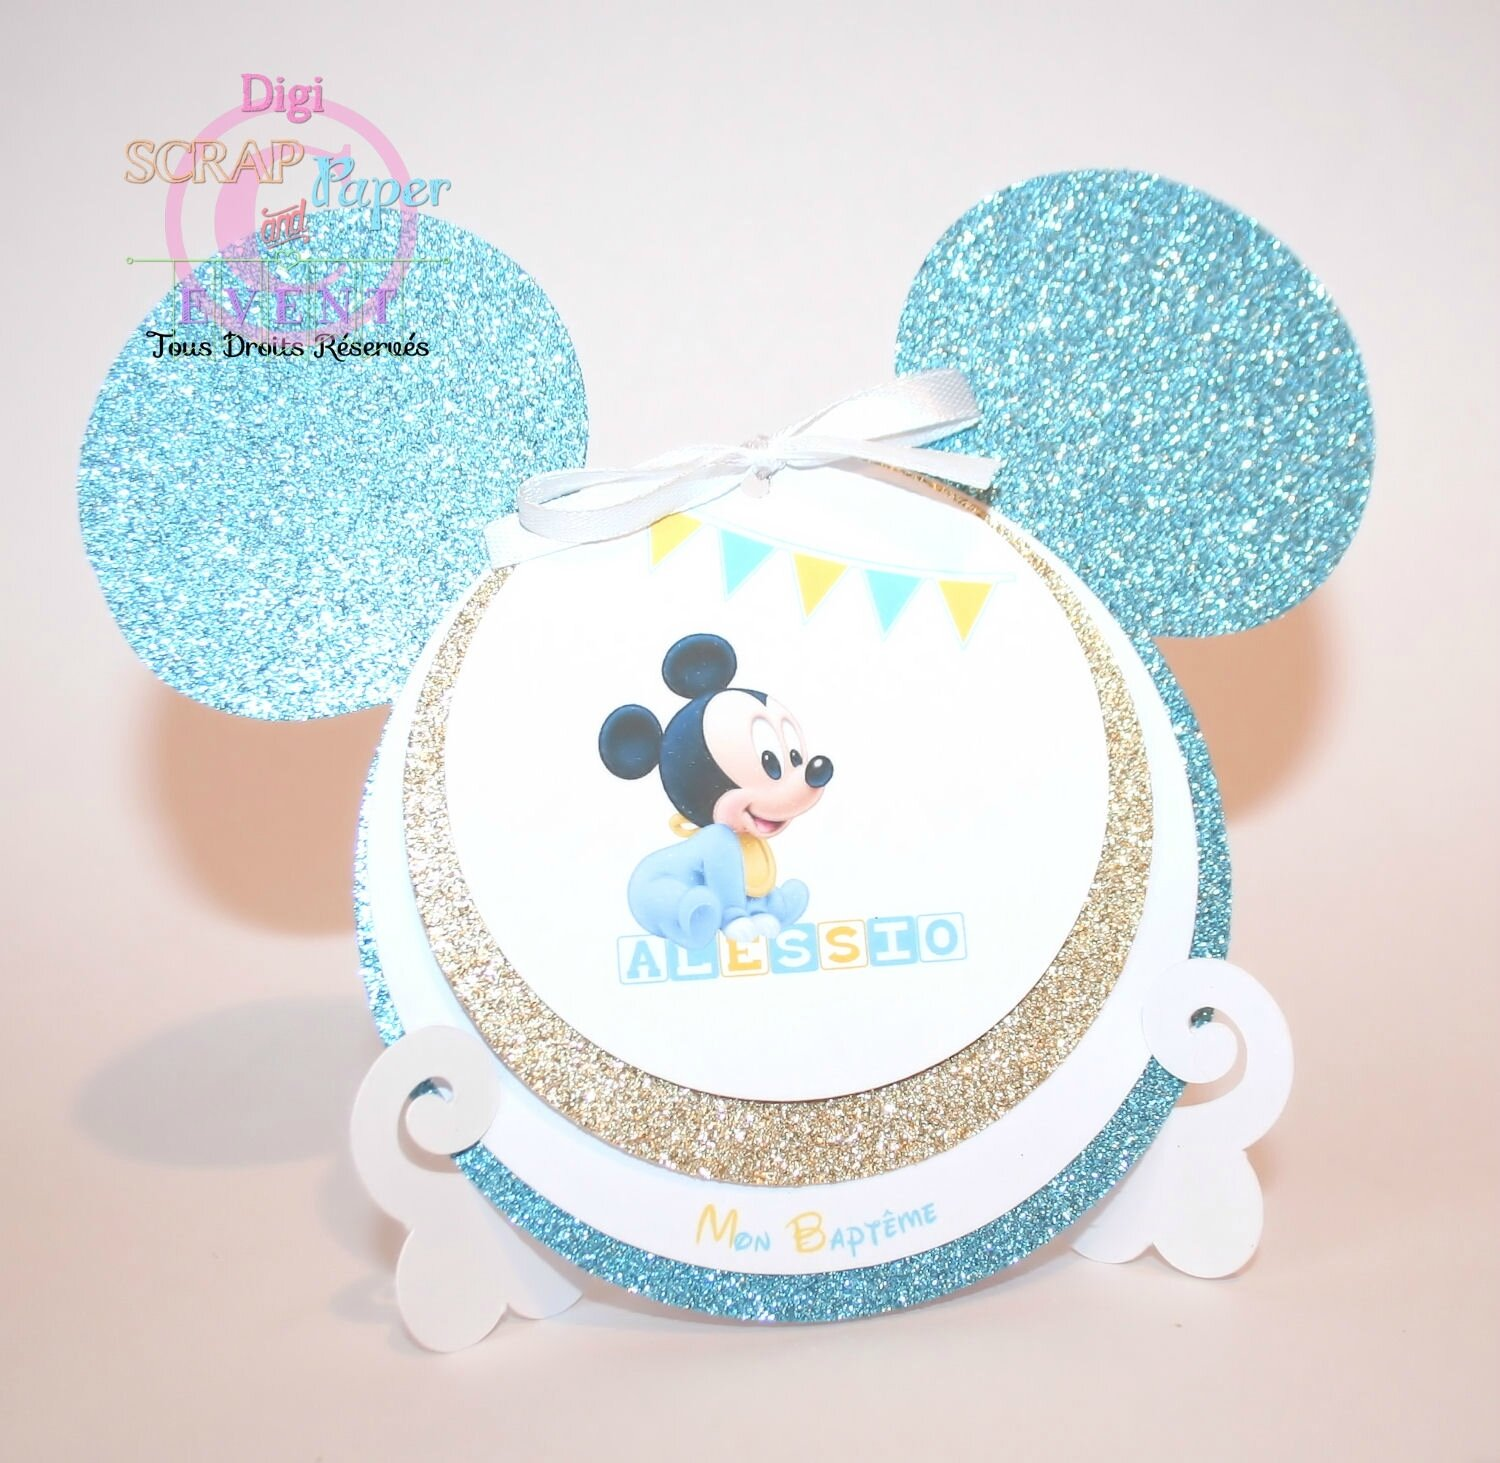 Fabuleux Faire-Part Mickey baby - Digi Scrap and Paper Event ZT48